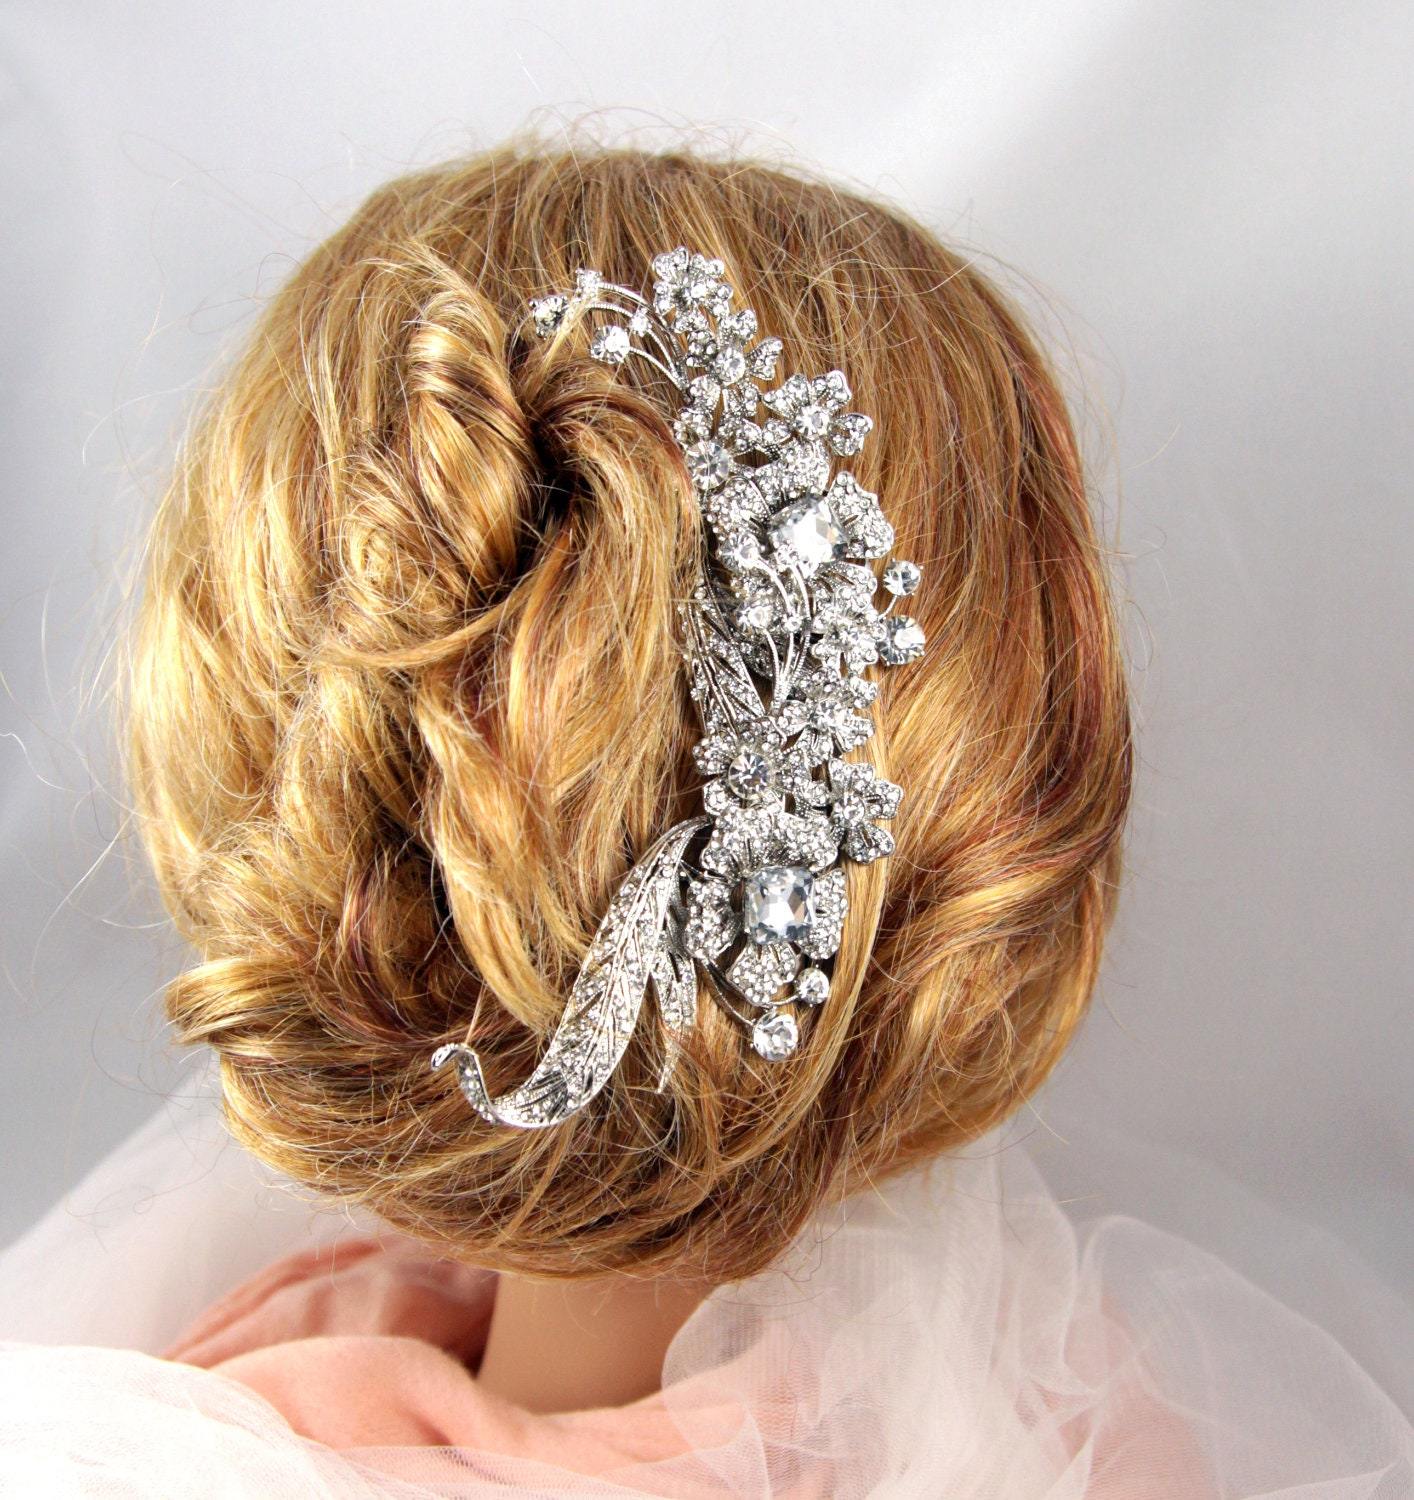 Miranda - Wedding Bridal Hair Comb, Accessories, White, Rhinestones, Crystal, Austrian crystal, Floral, Vintage, Aide